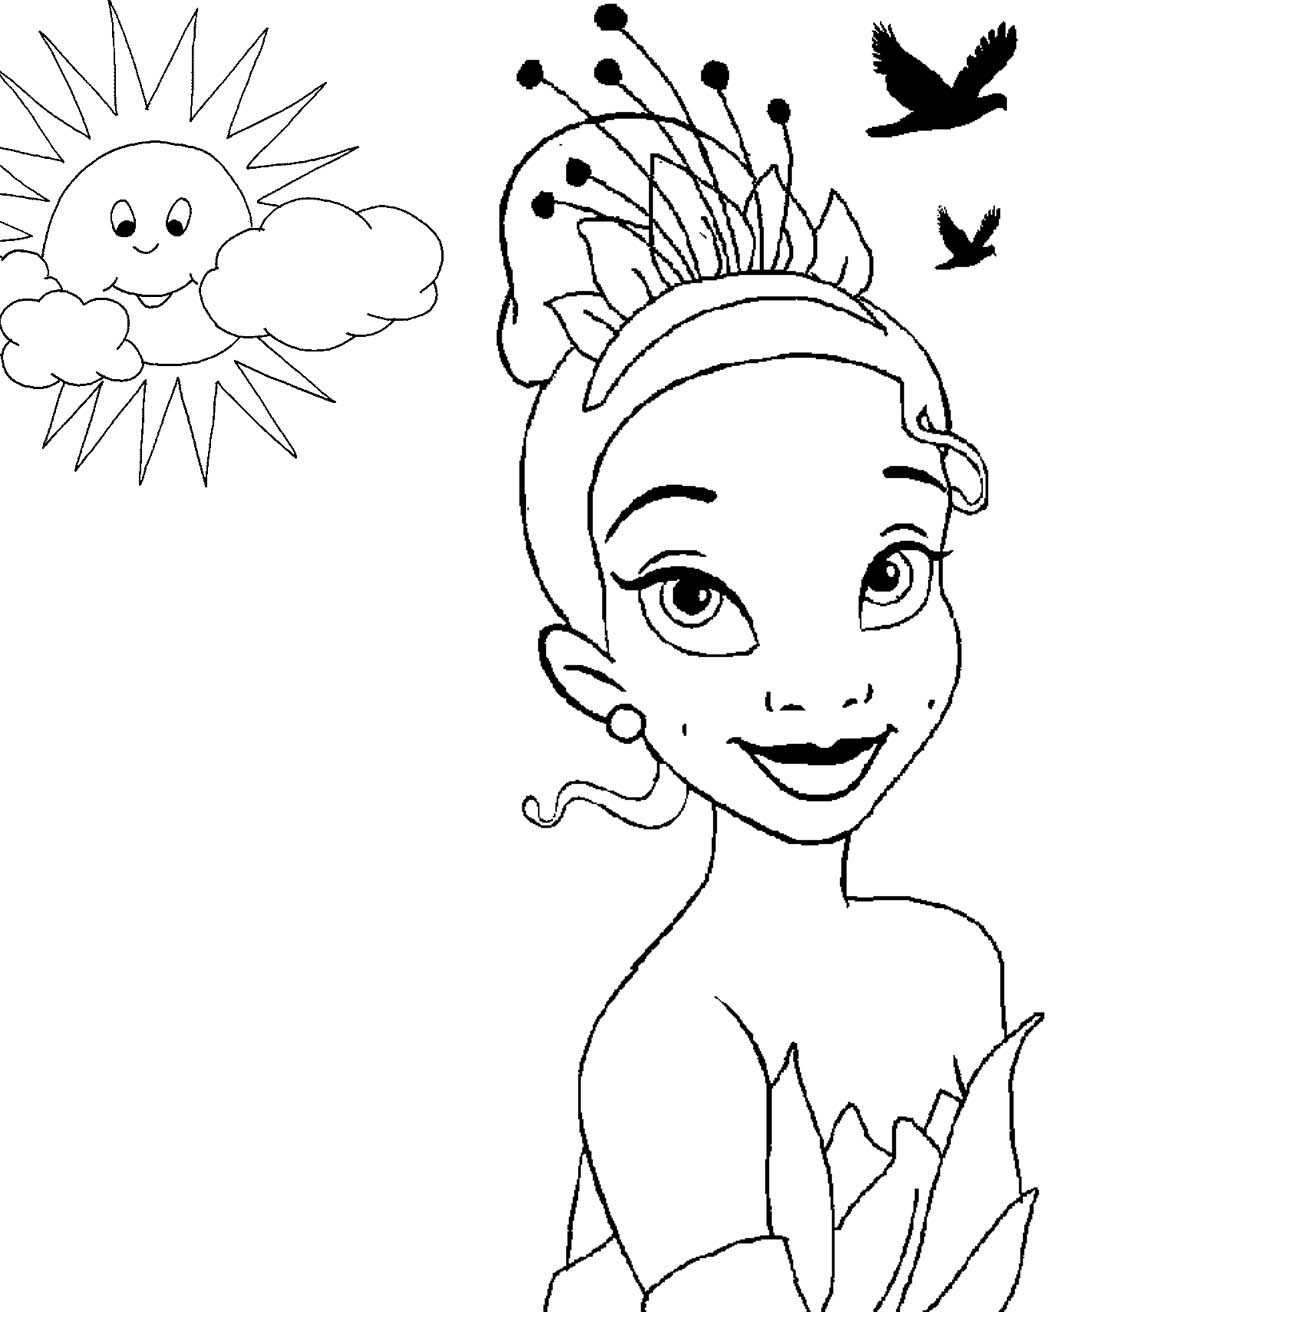 colouring pages for disney princesses disney princesses best coloring pages minister coloring colouring for princesses disney pages